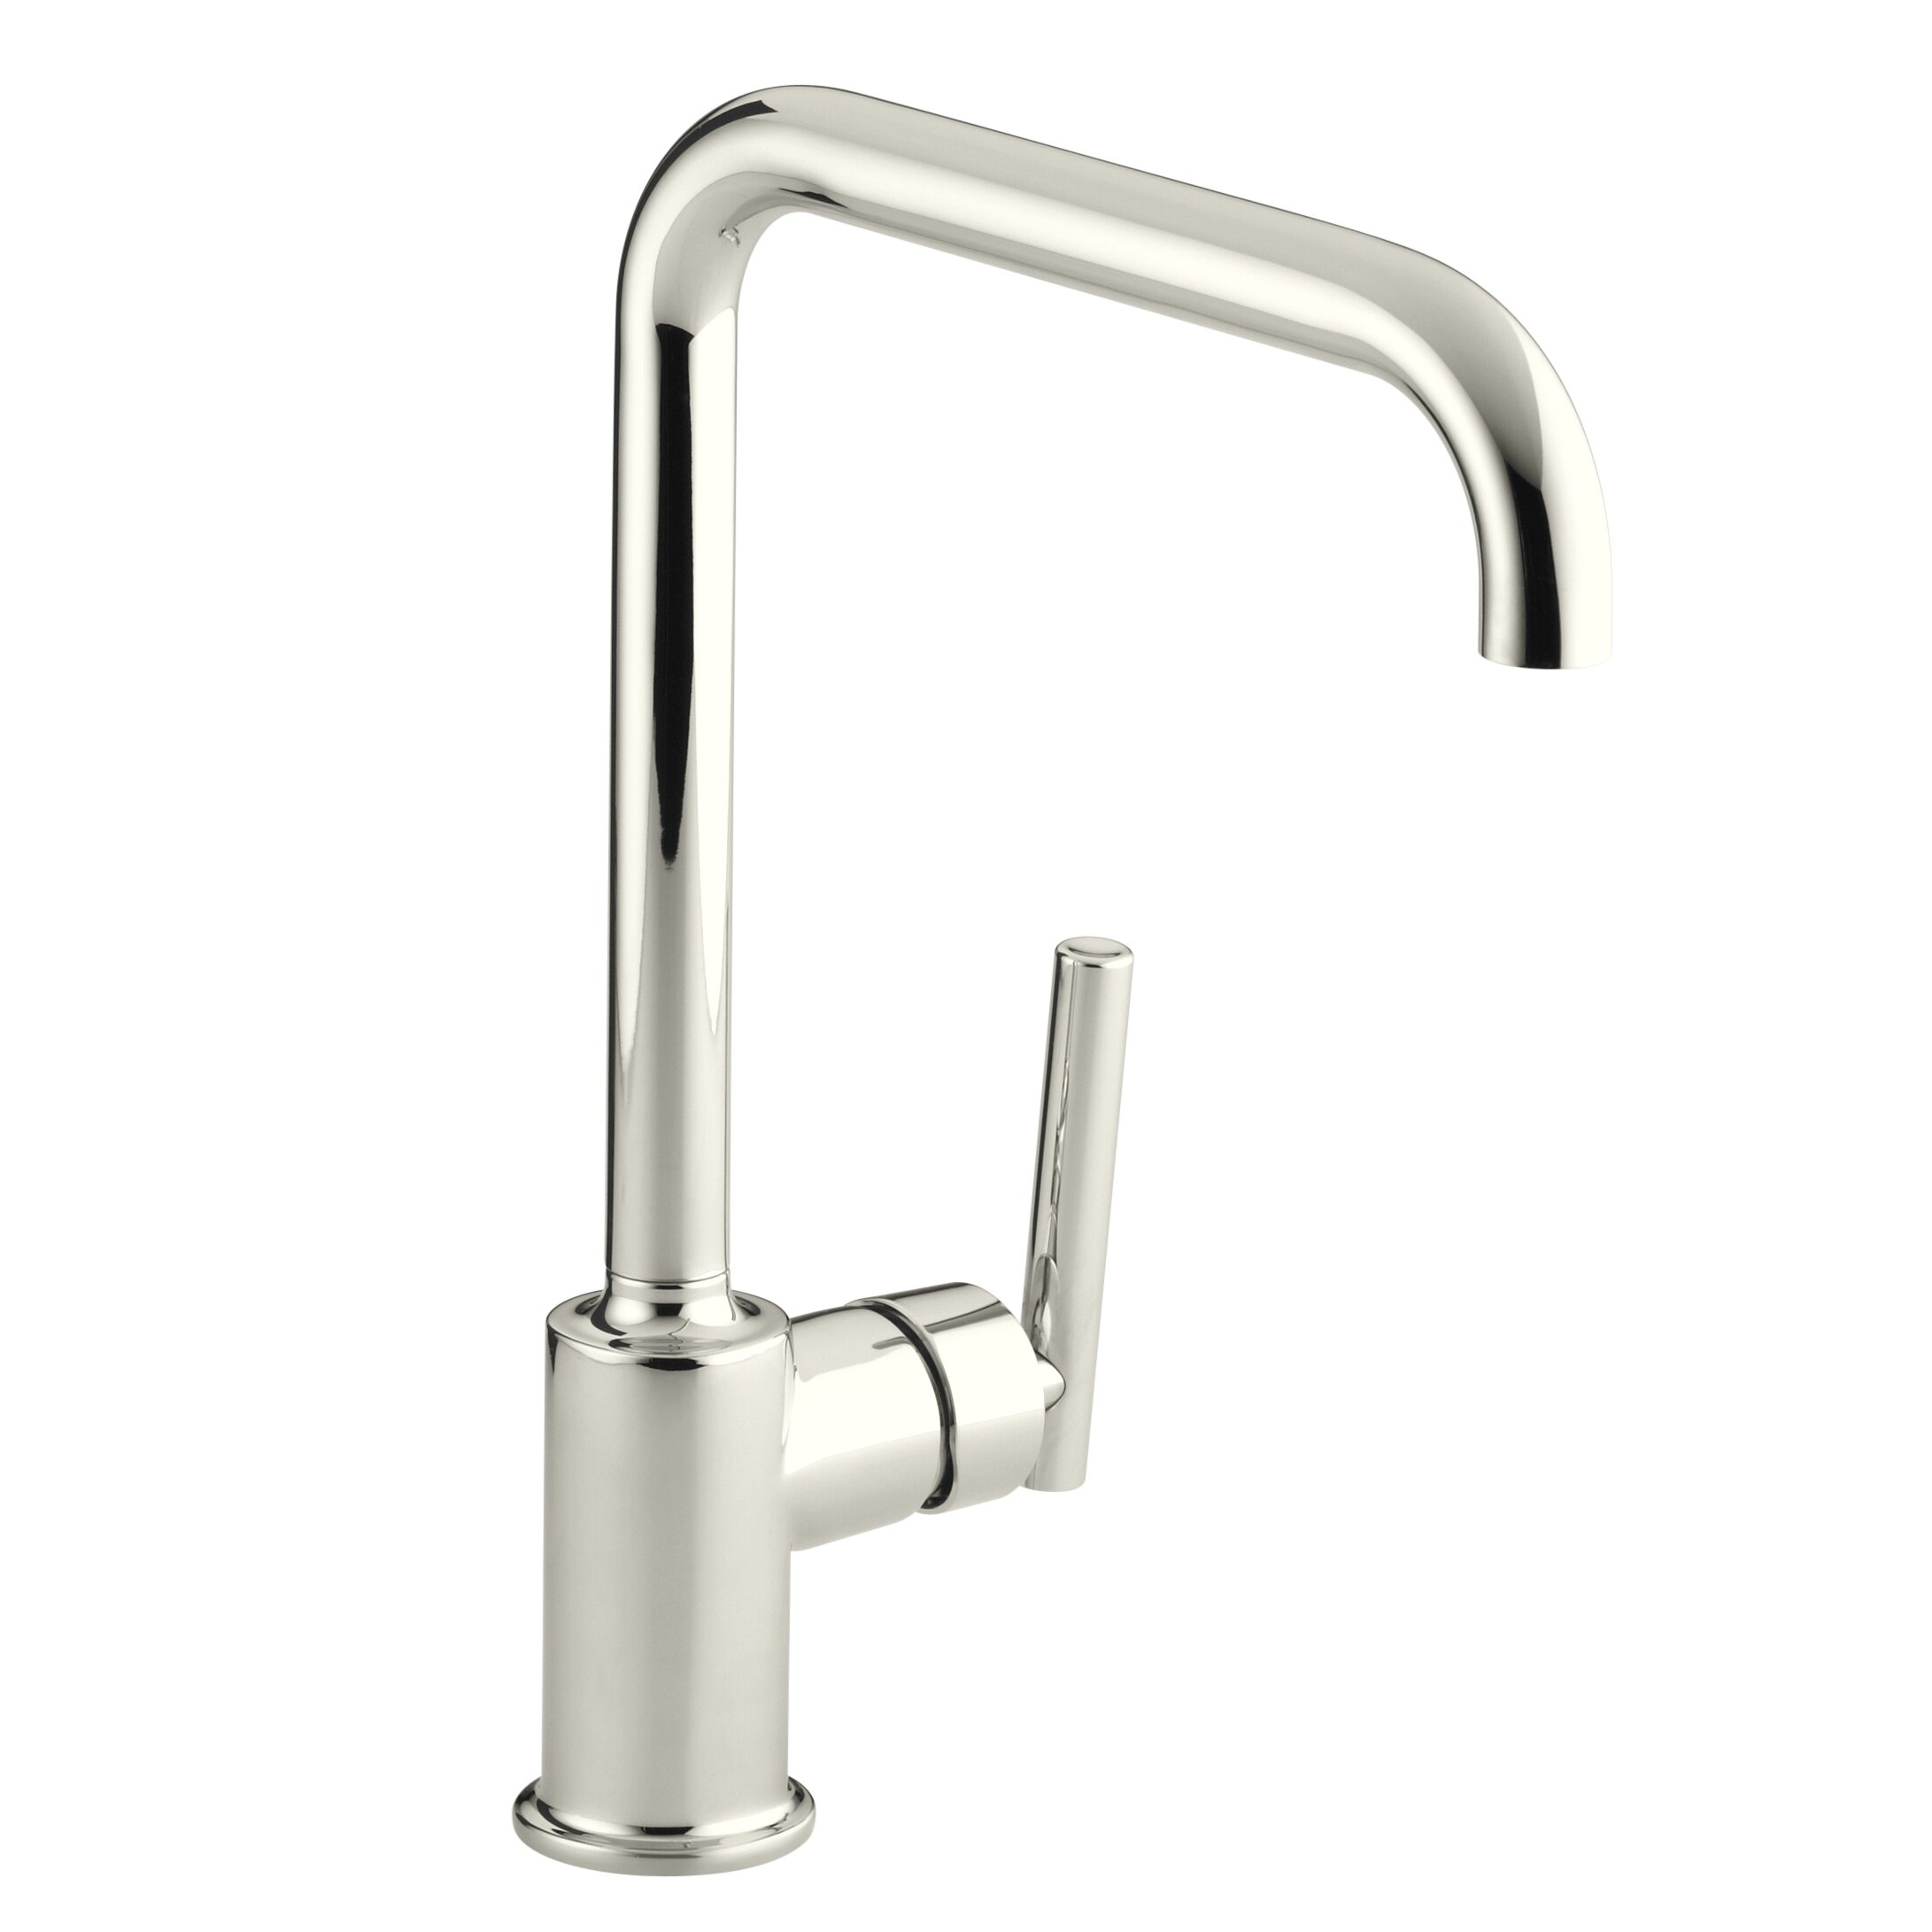 kohler purist single kitchen sink faucet with 8